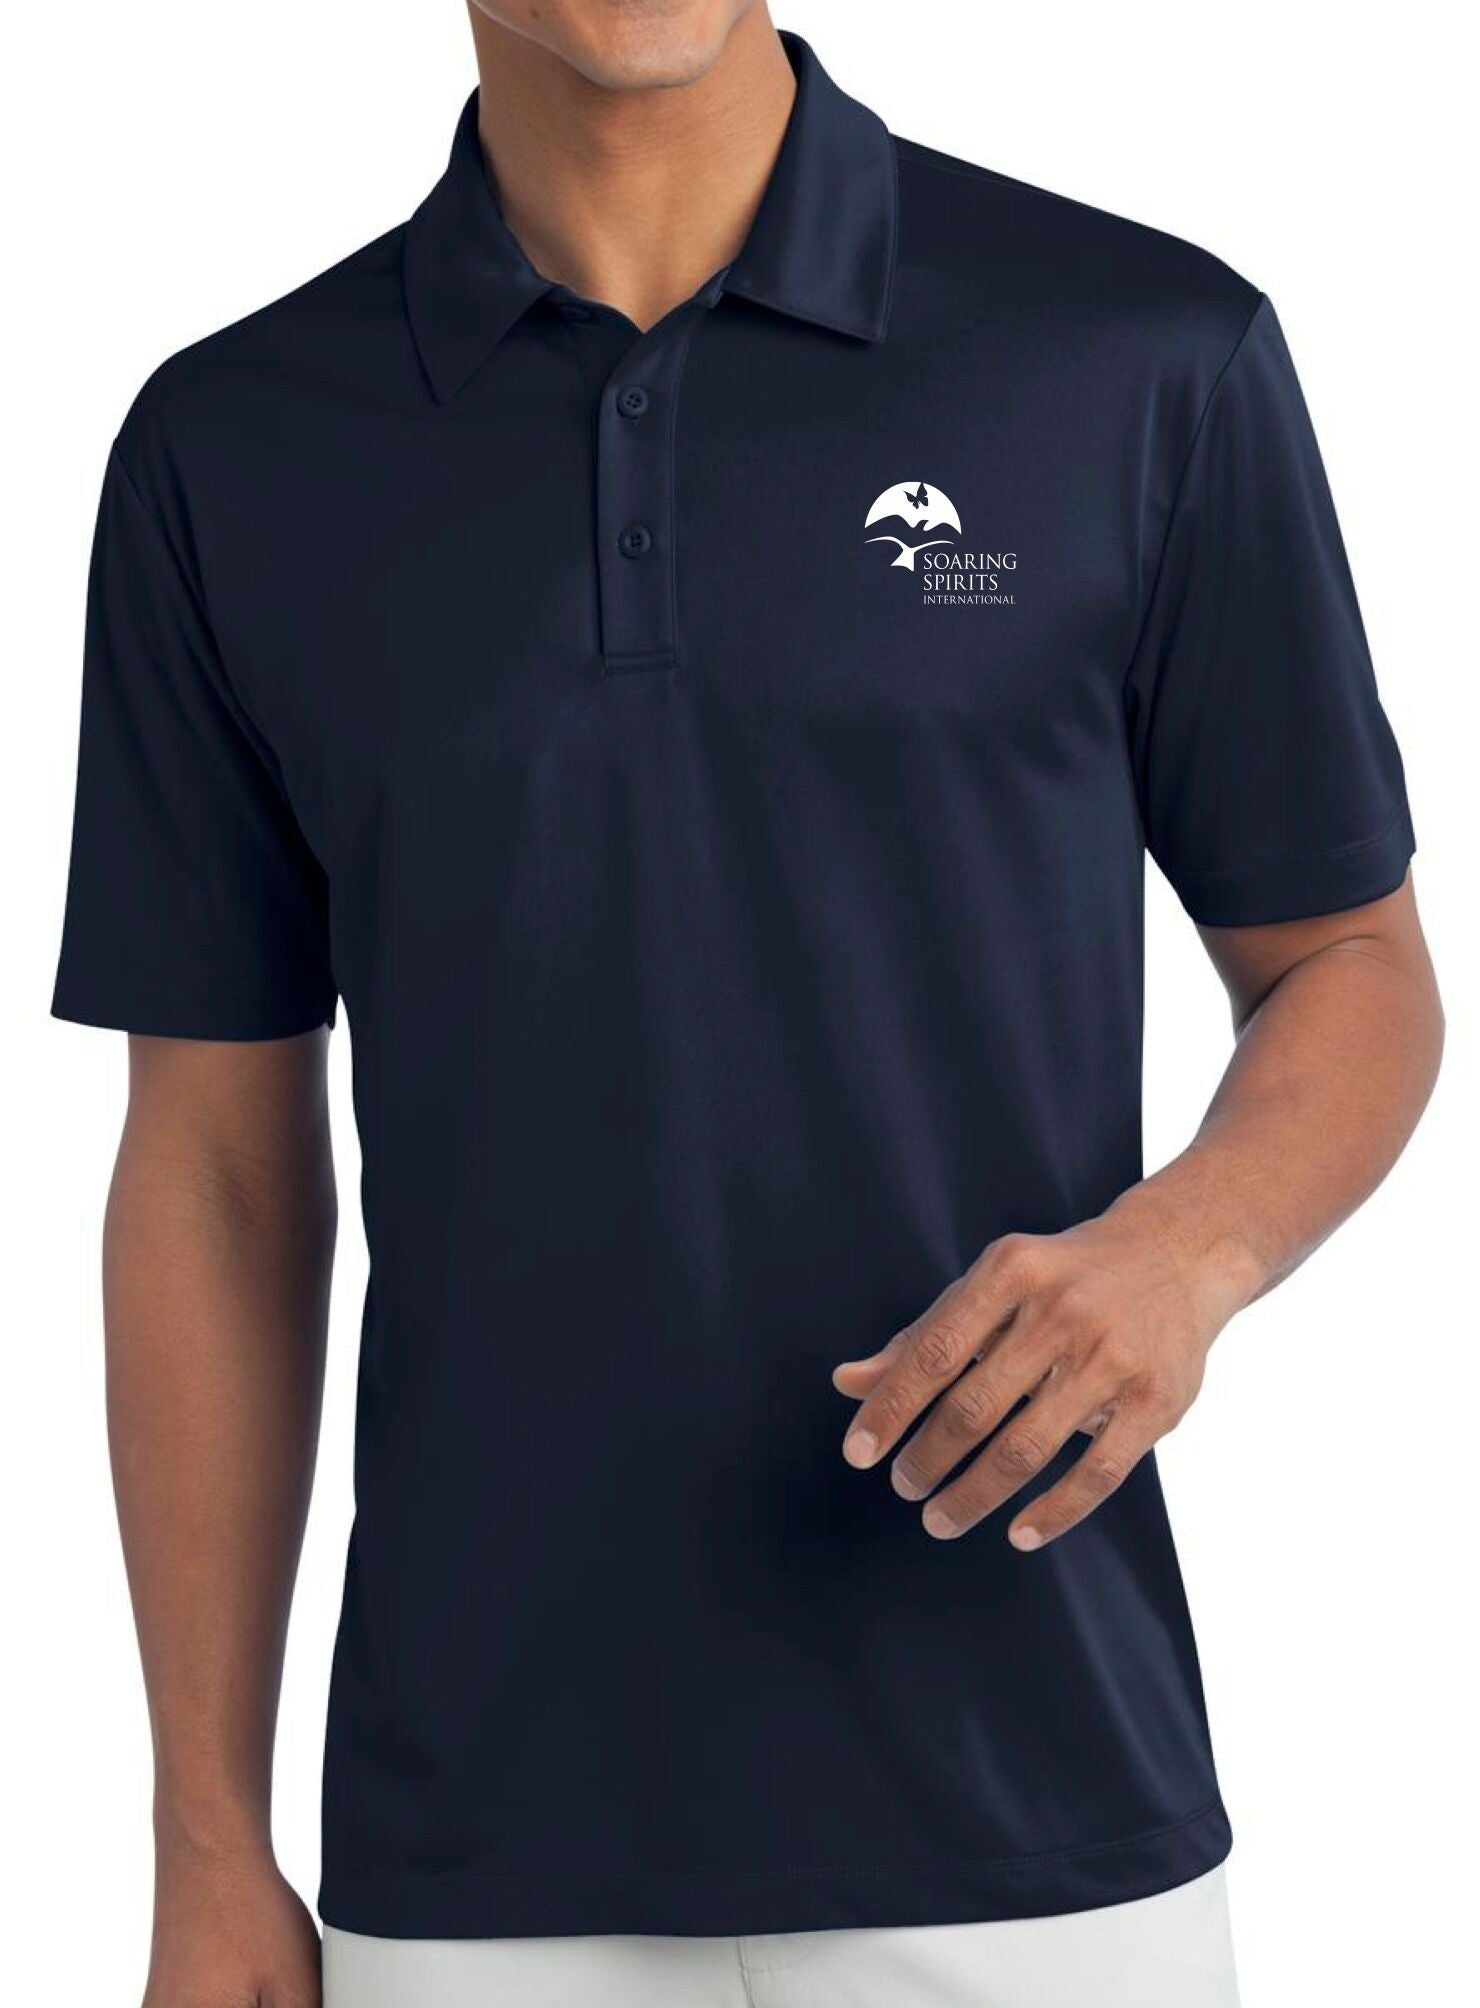 Soaring Spirits Golf Polo